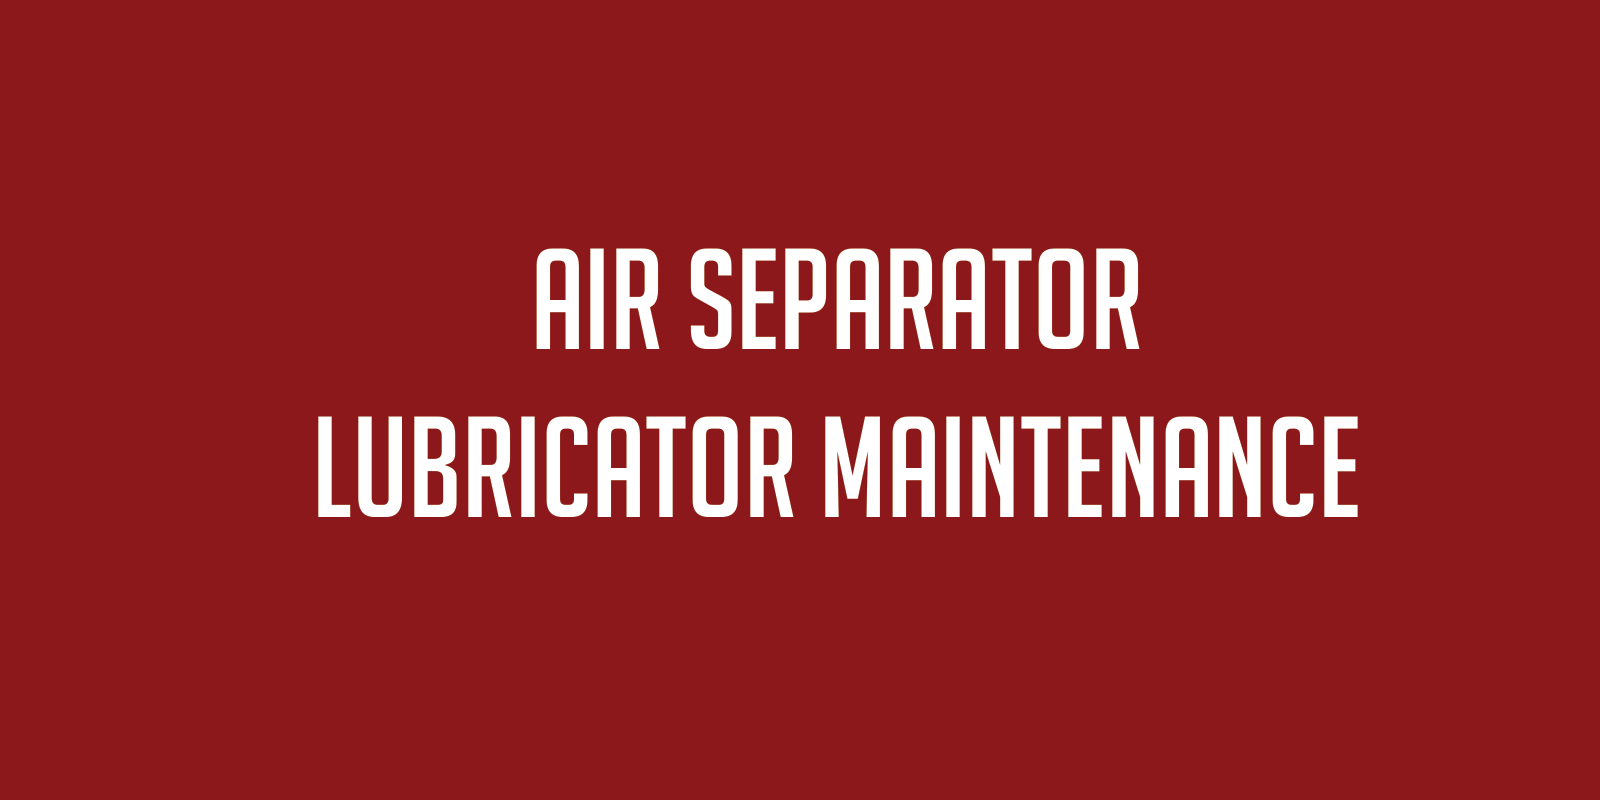 Air Separator Lubricator Maintenance